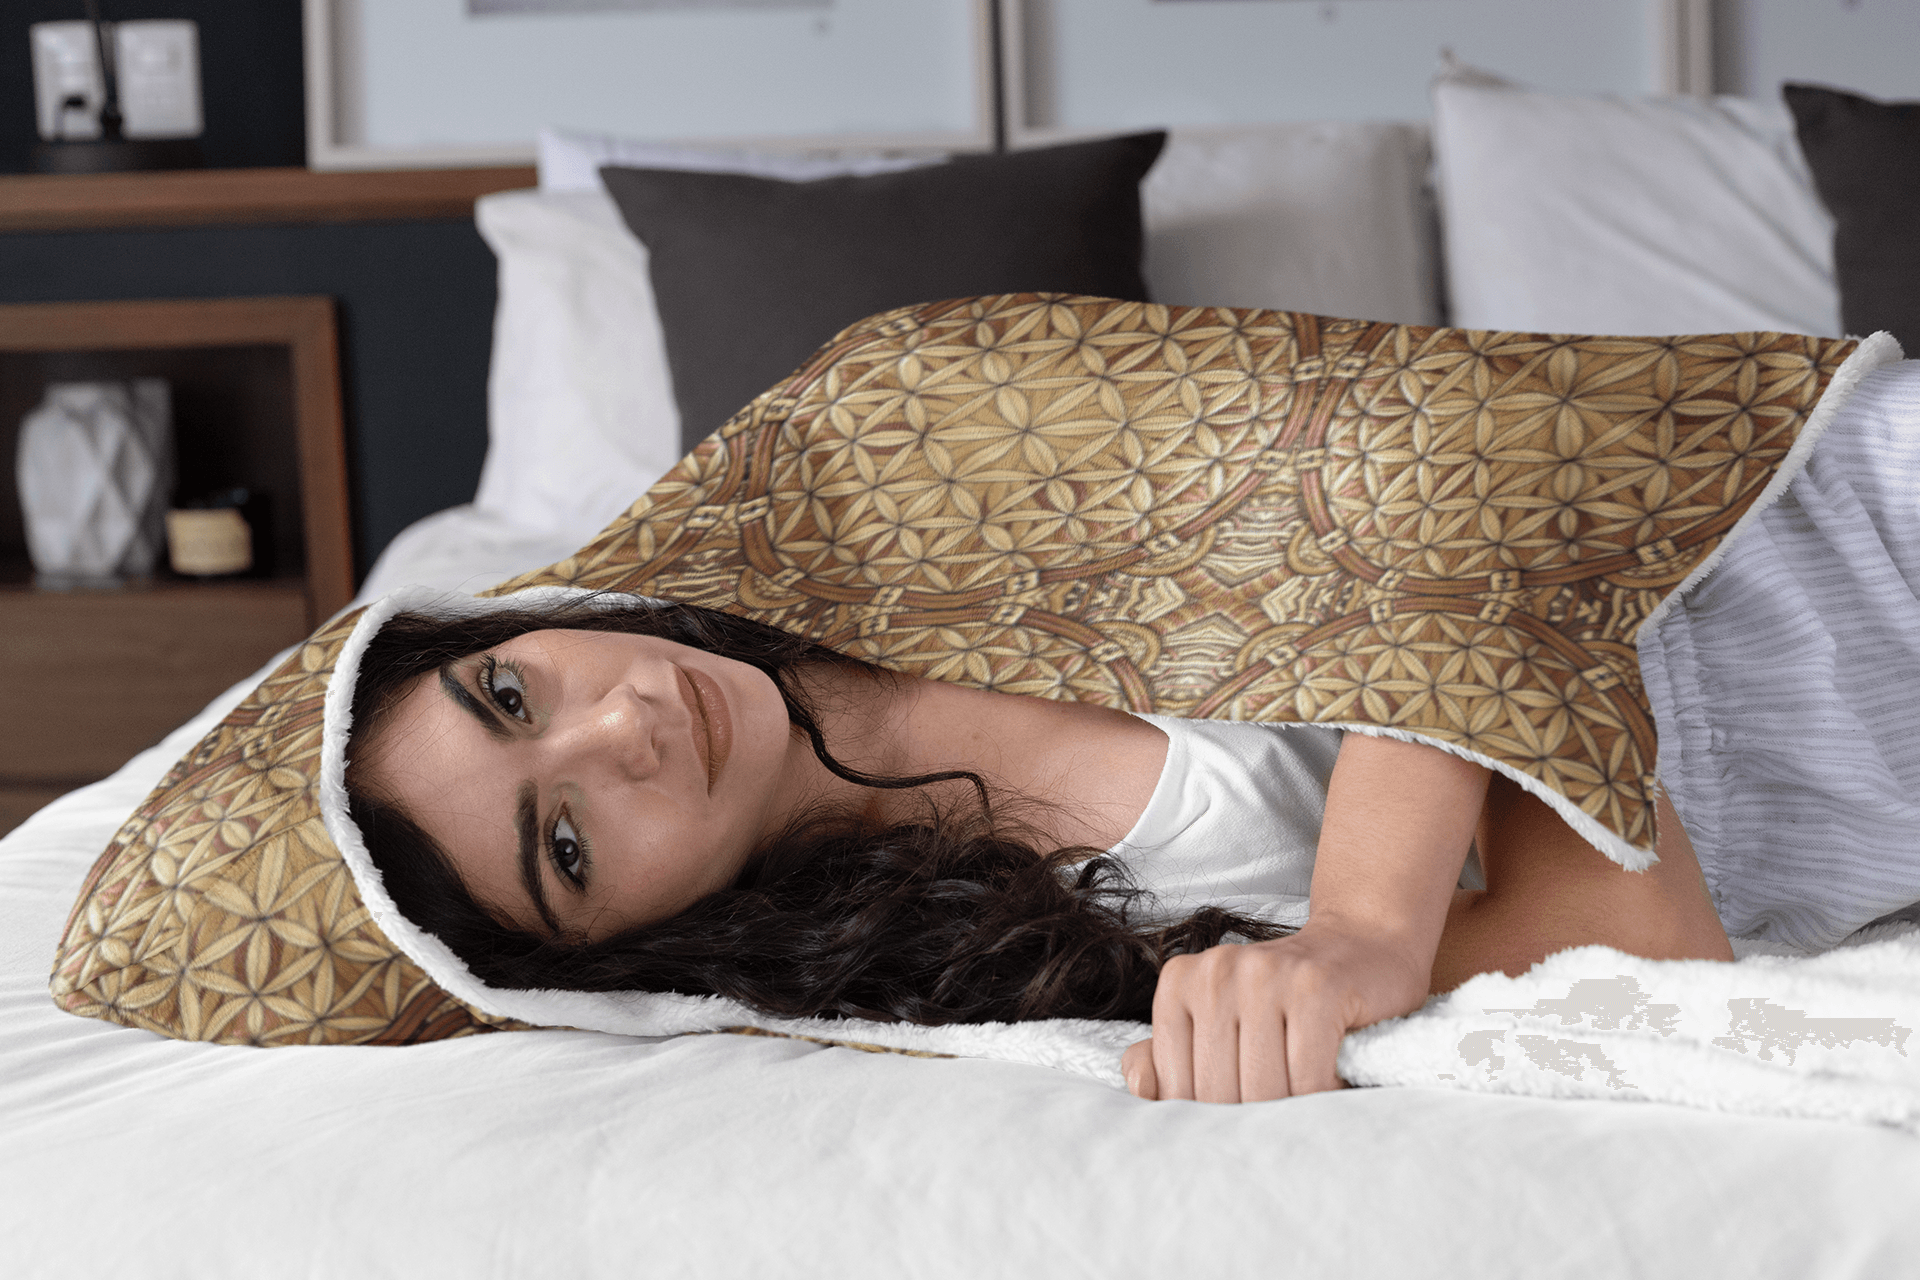 GOLDEN FLOWER OF LIFE PREMIUM HOODED BLANKET with Wrist Straps